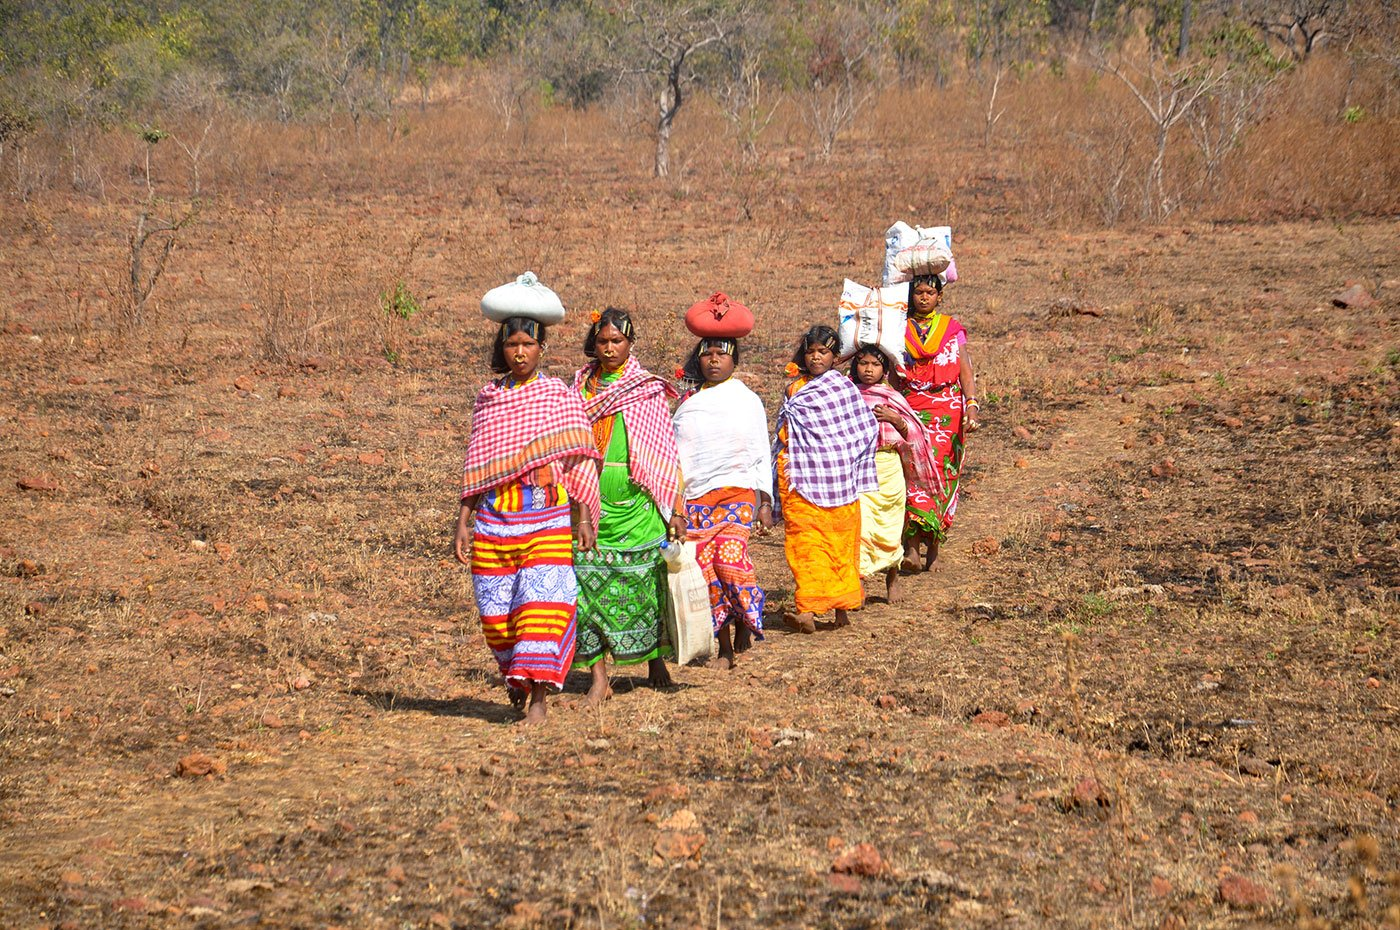 Tribal women walking in a field with a load on their heads